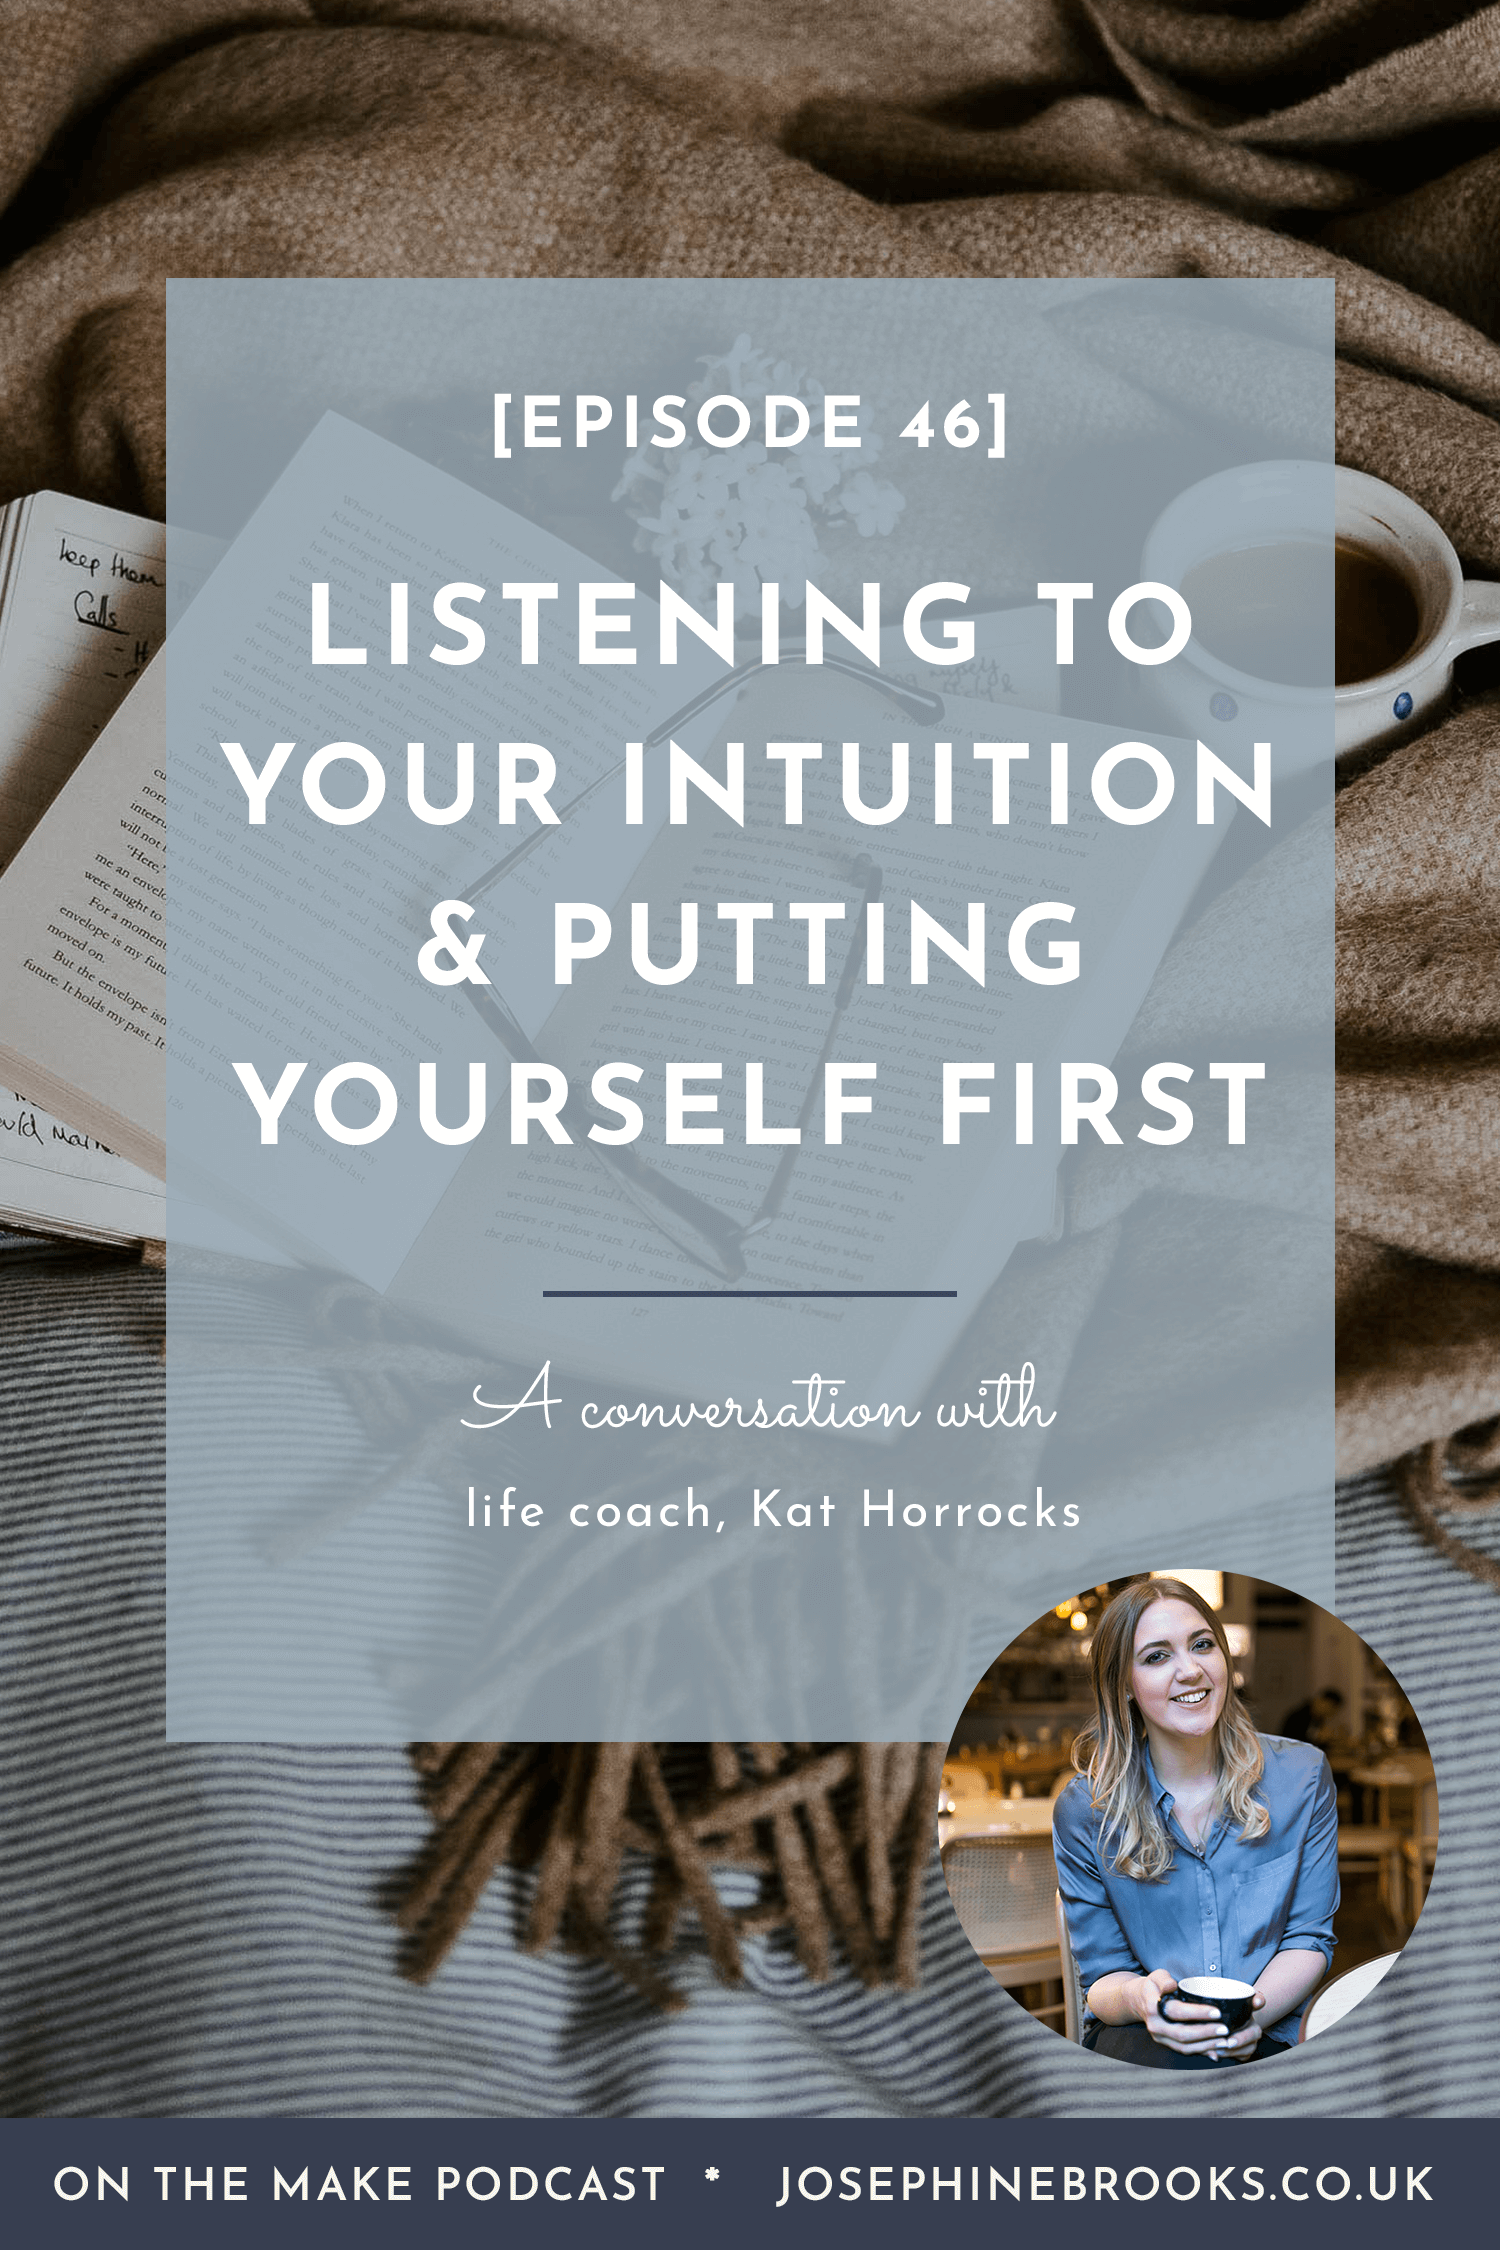 Listening to your intuition & putting yourself first with Kat Horrocks - Episode 46 of On The Make podcast hosted by Josephine Brooks